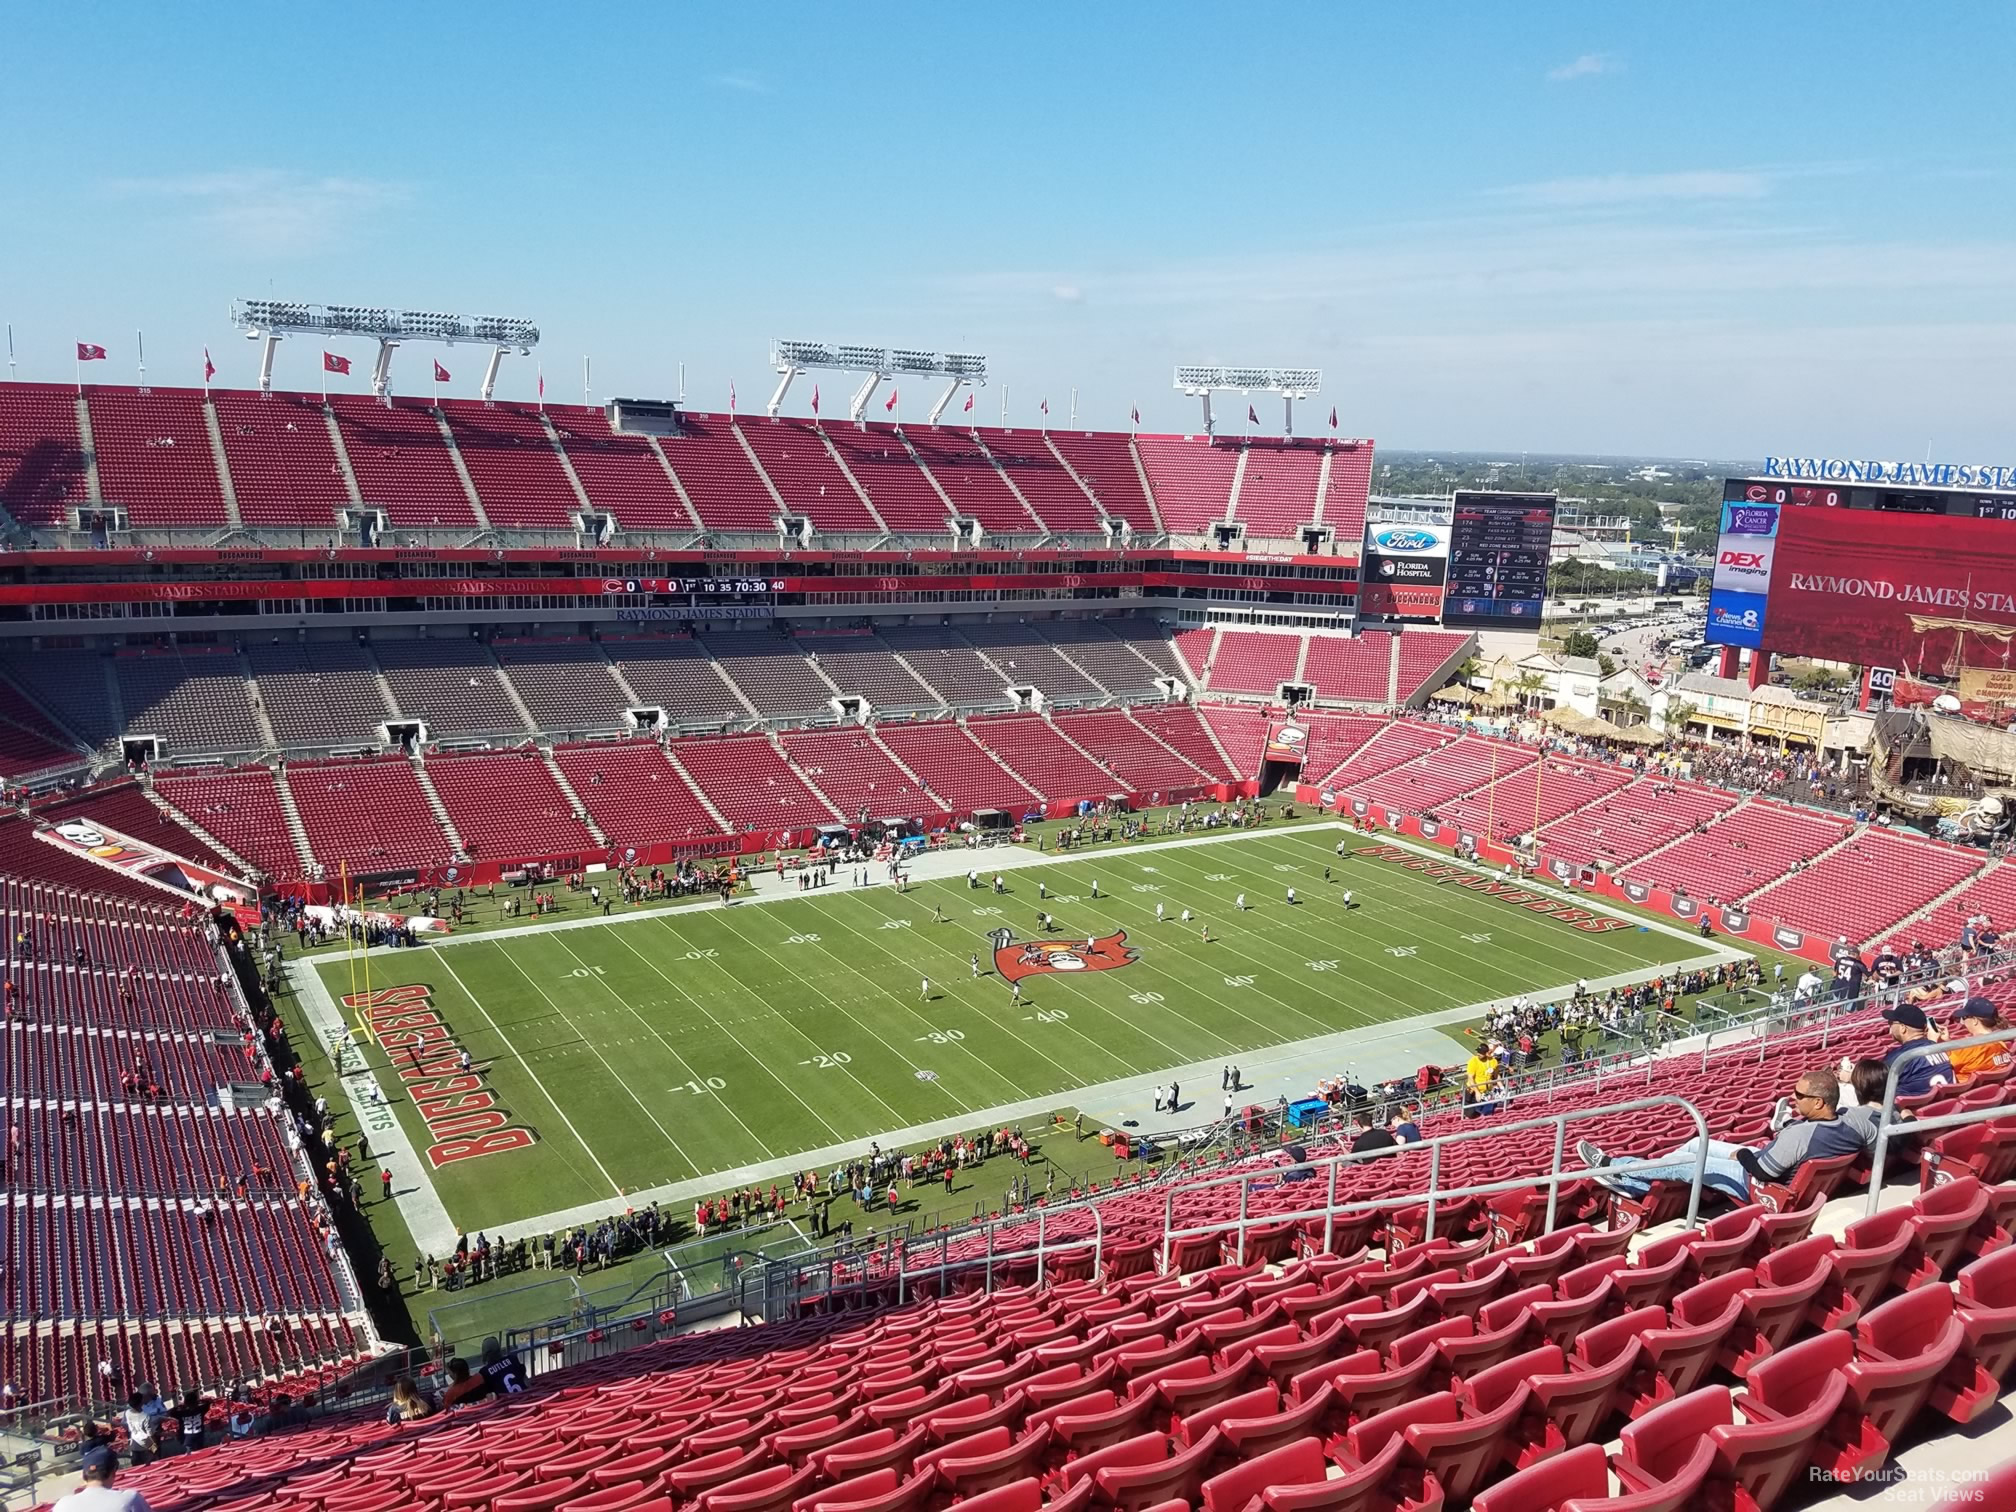 section 330 at raymond james stadium tampa bay buccaneers rateyourseats com section 330 at raymond james stadium